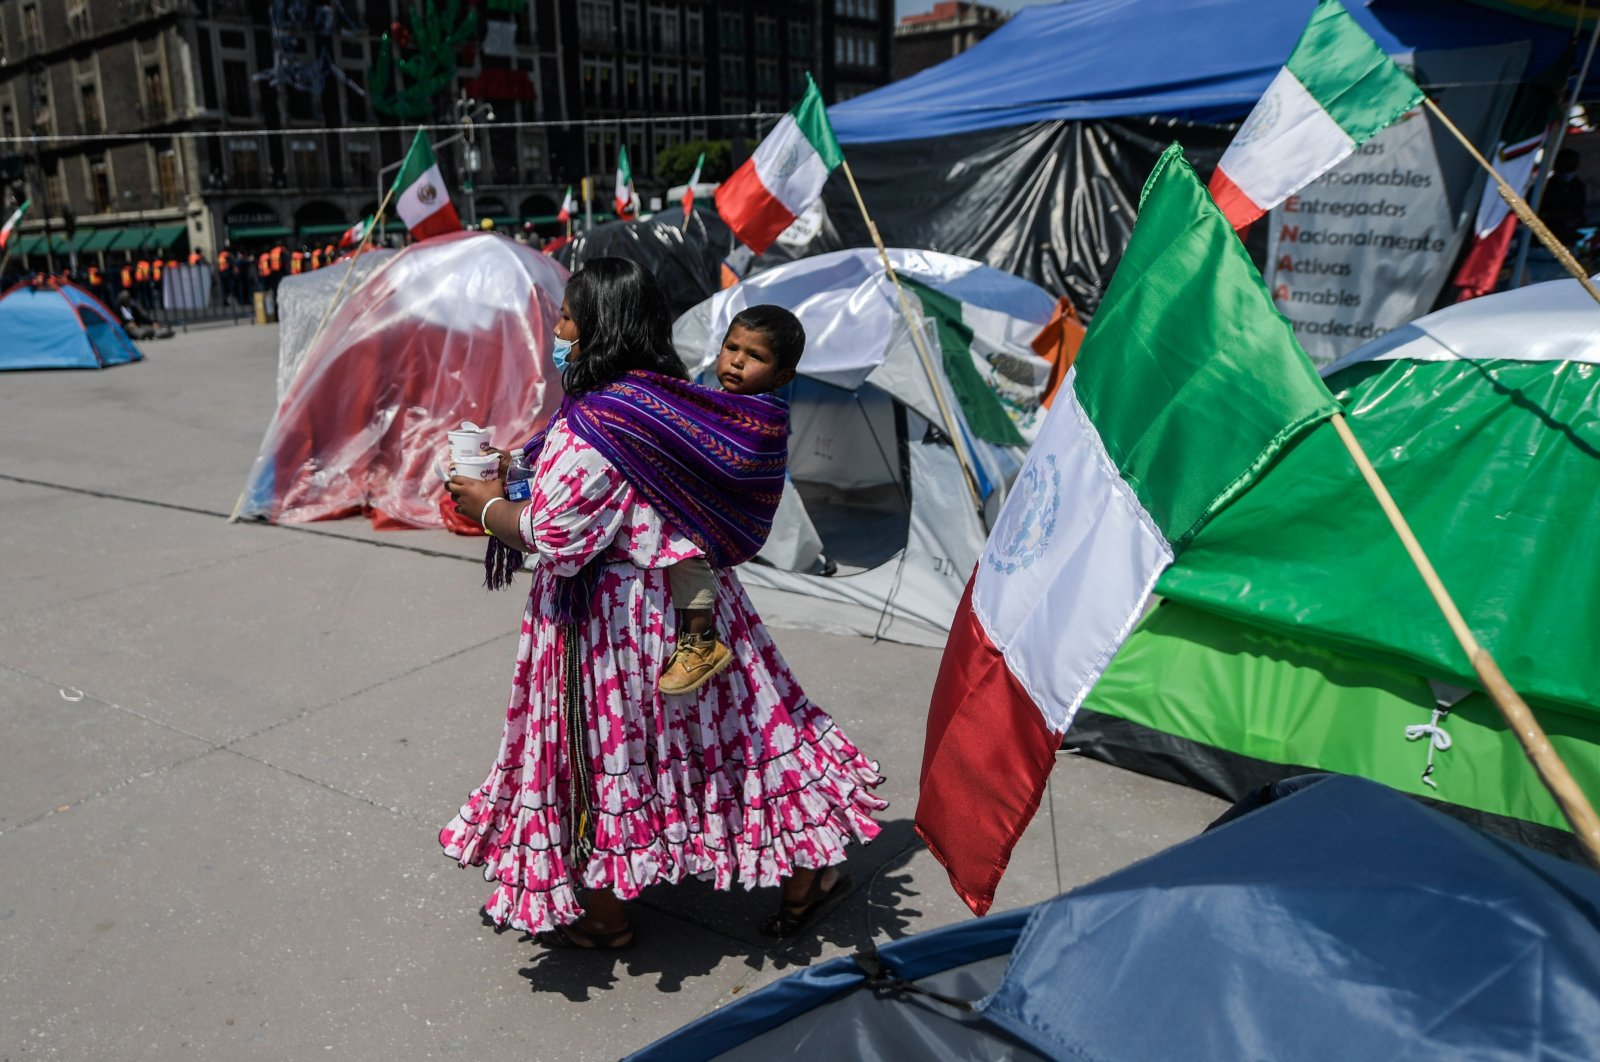 A woman of the Raramuri ethnic group walks amid tents set up by members of the National Front Anti-AMLO to protest against Mexican President Andres Manuel Lopez Obrador at Zocalo Square in Mexico City, on Oct. 5, 2020. (AFP Photo)